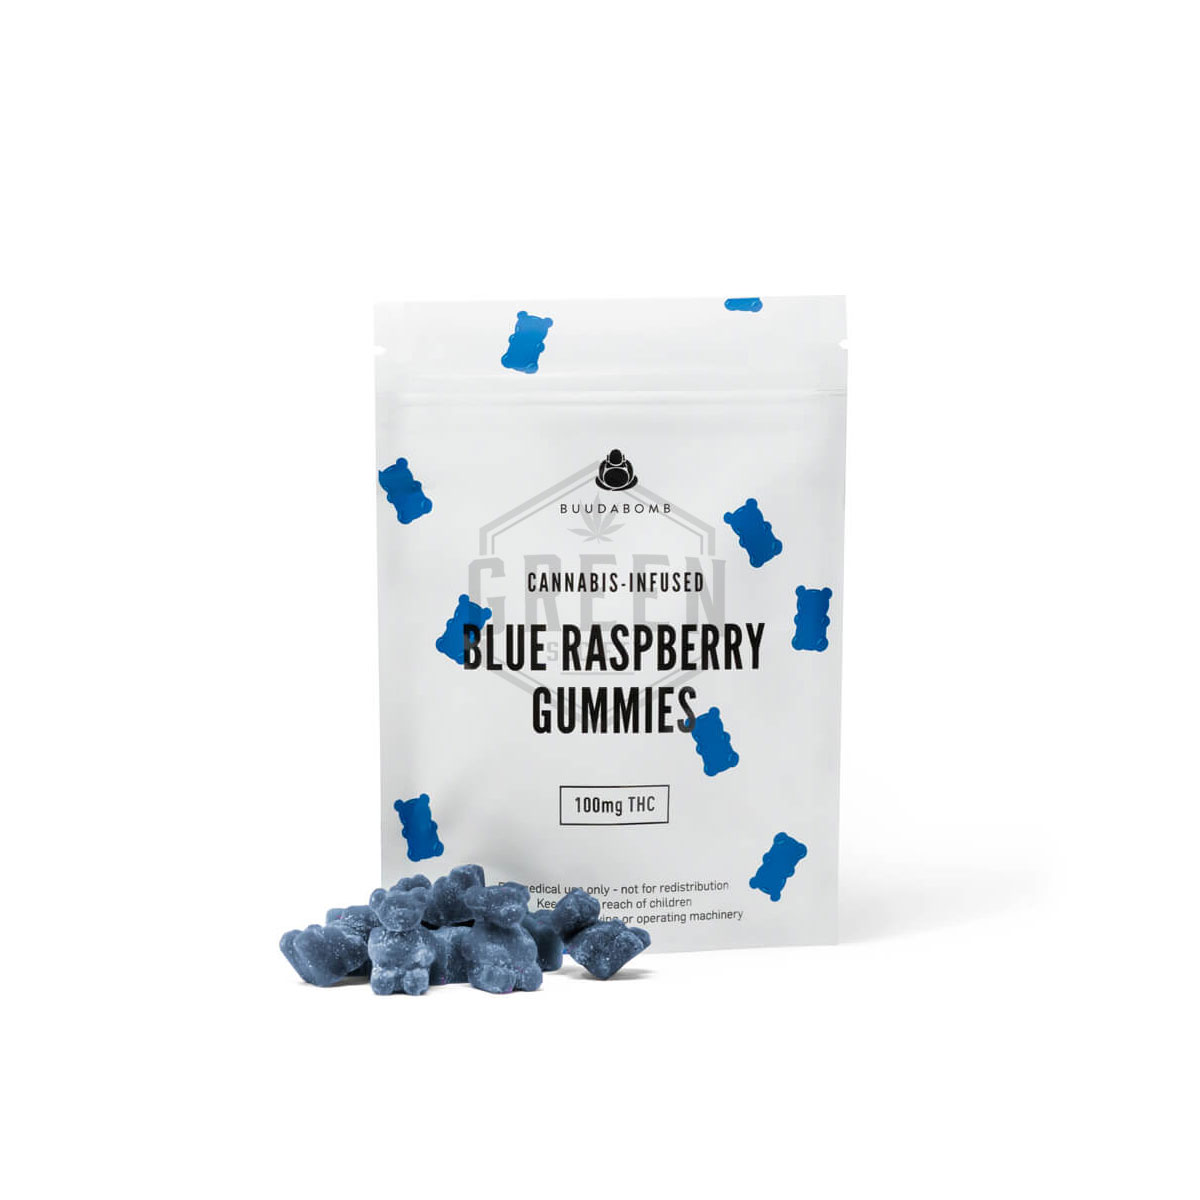 Buuda Bomb Blue Raspberry Gummies by Green Society - Image © 2018 Green Society. All Rights Reserved.